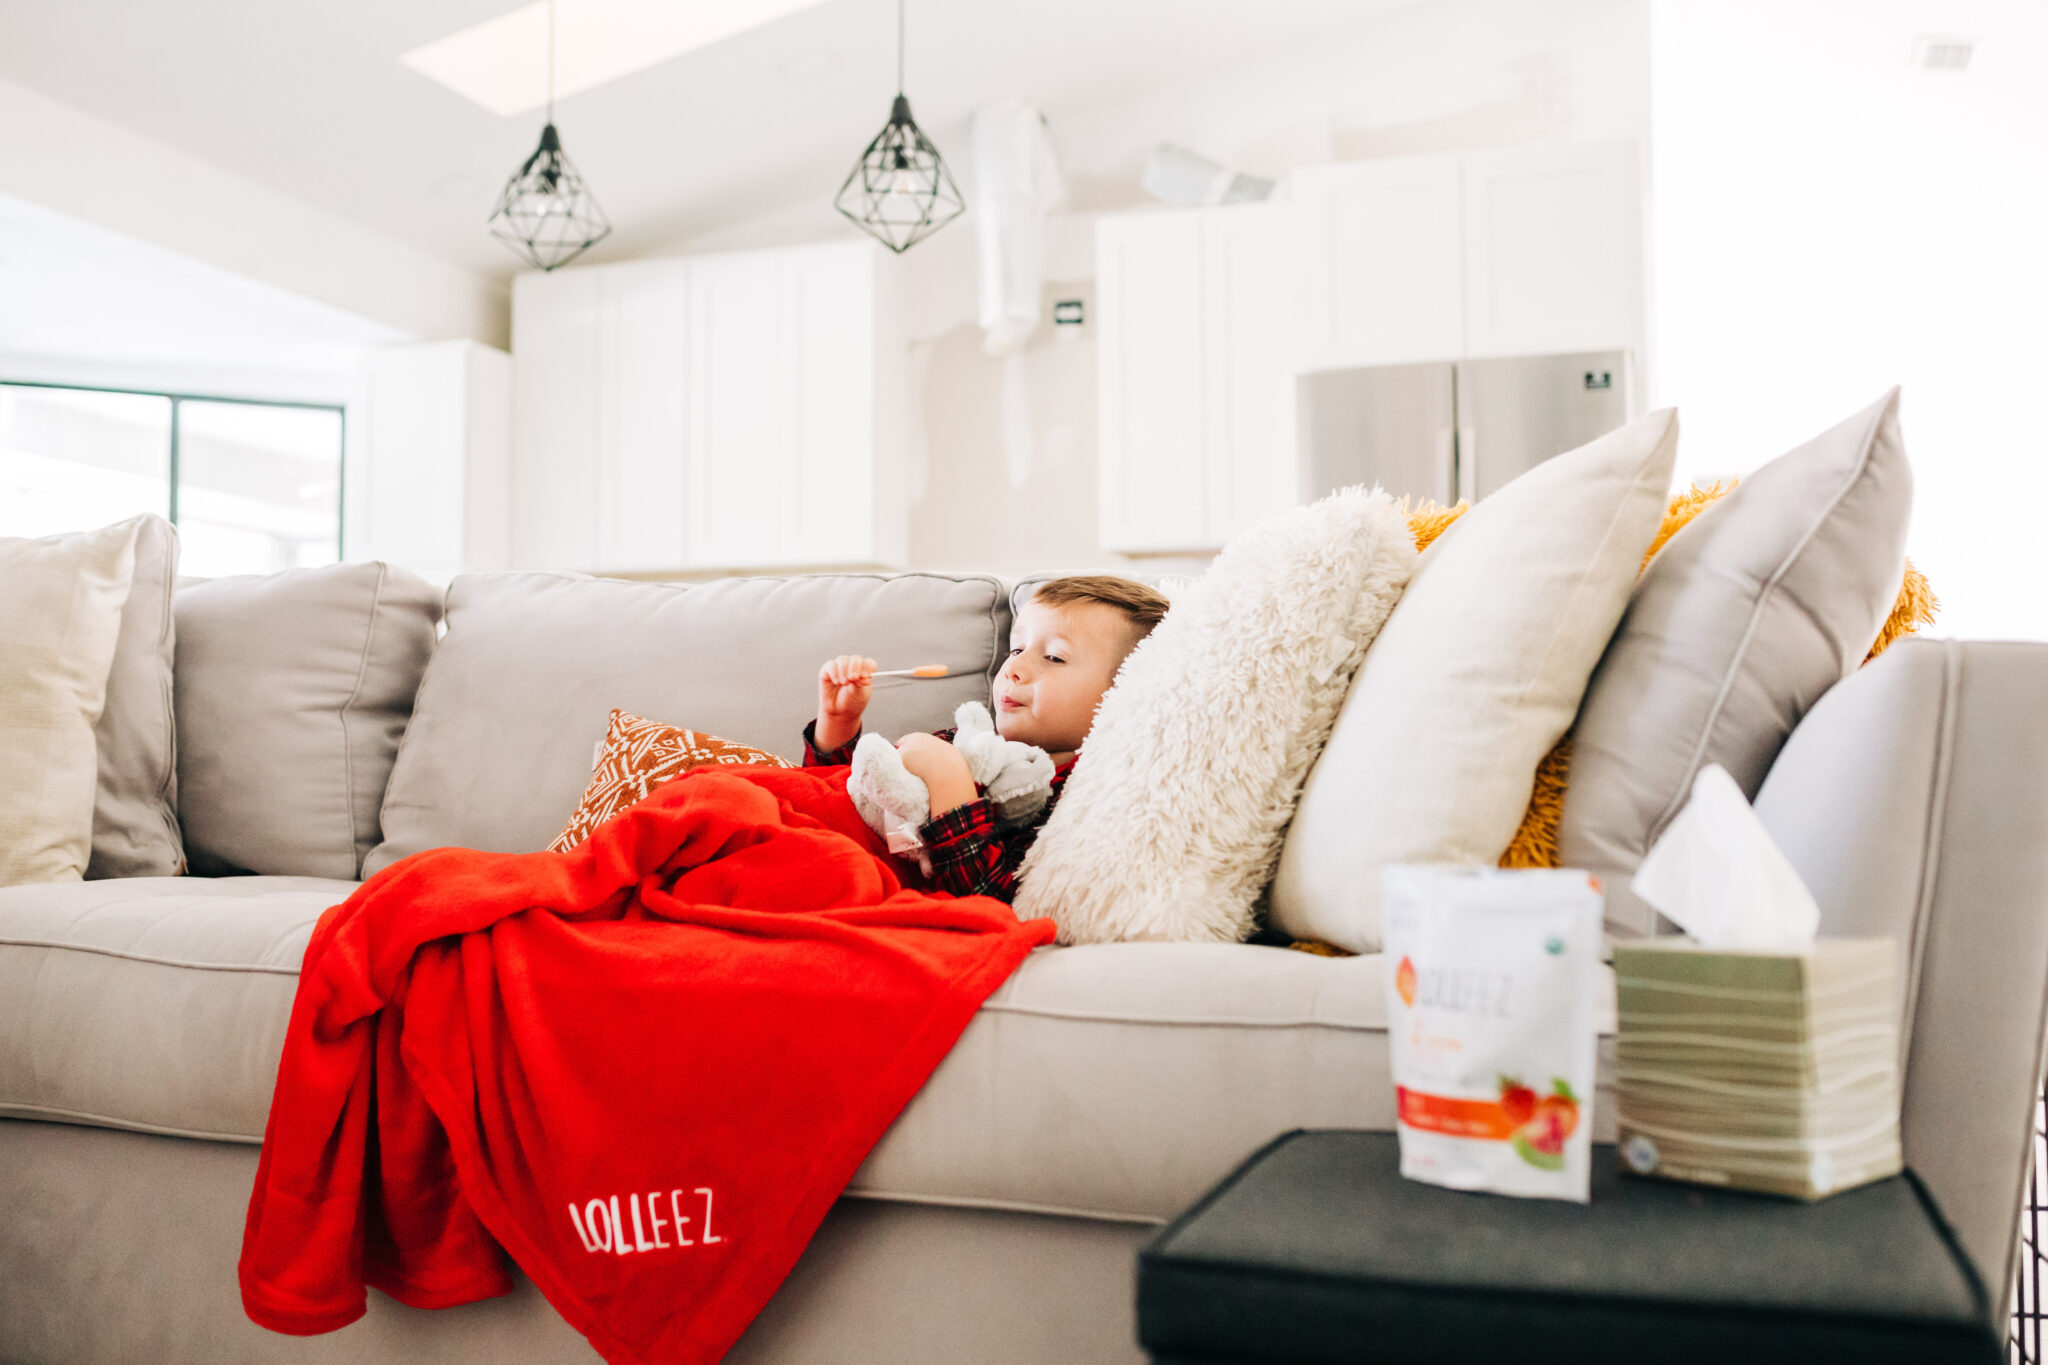 Mom Blogger, Crazy Life with Littles, shares her top sick day hacks for children including Lolleez organic pops to soothe sore throats, 9 Sick Day Hacks from a Mom, kids cold remedy, sore throat remedy